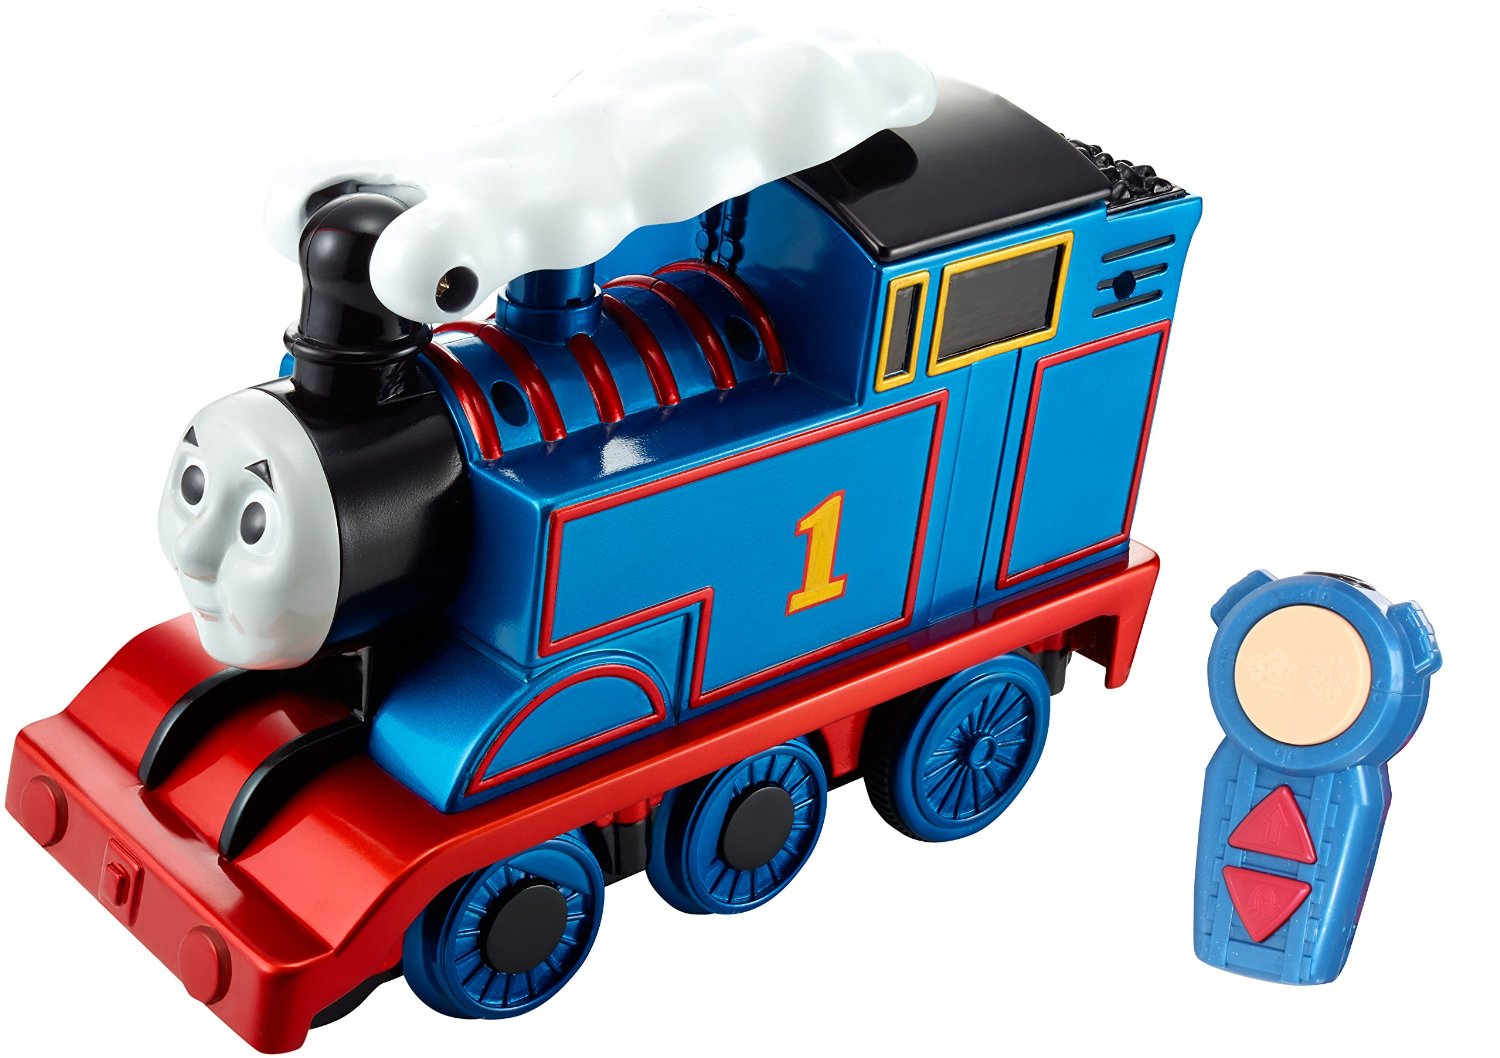 Best Thomas And Friends Toys And Trains : Best thomas the train toys tank engine more